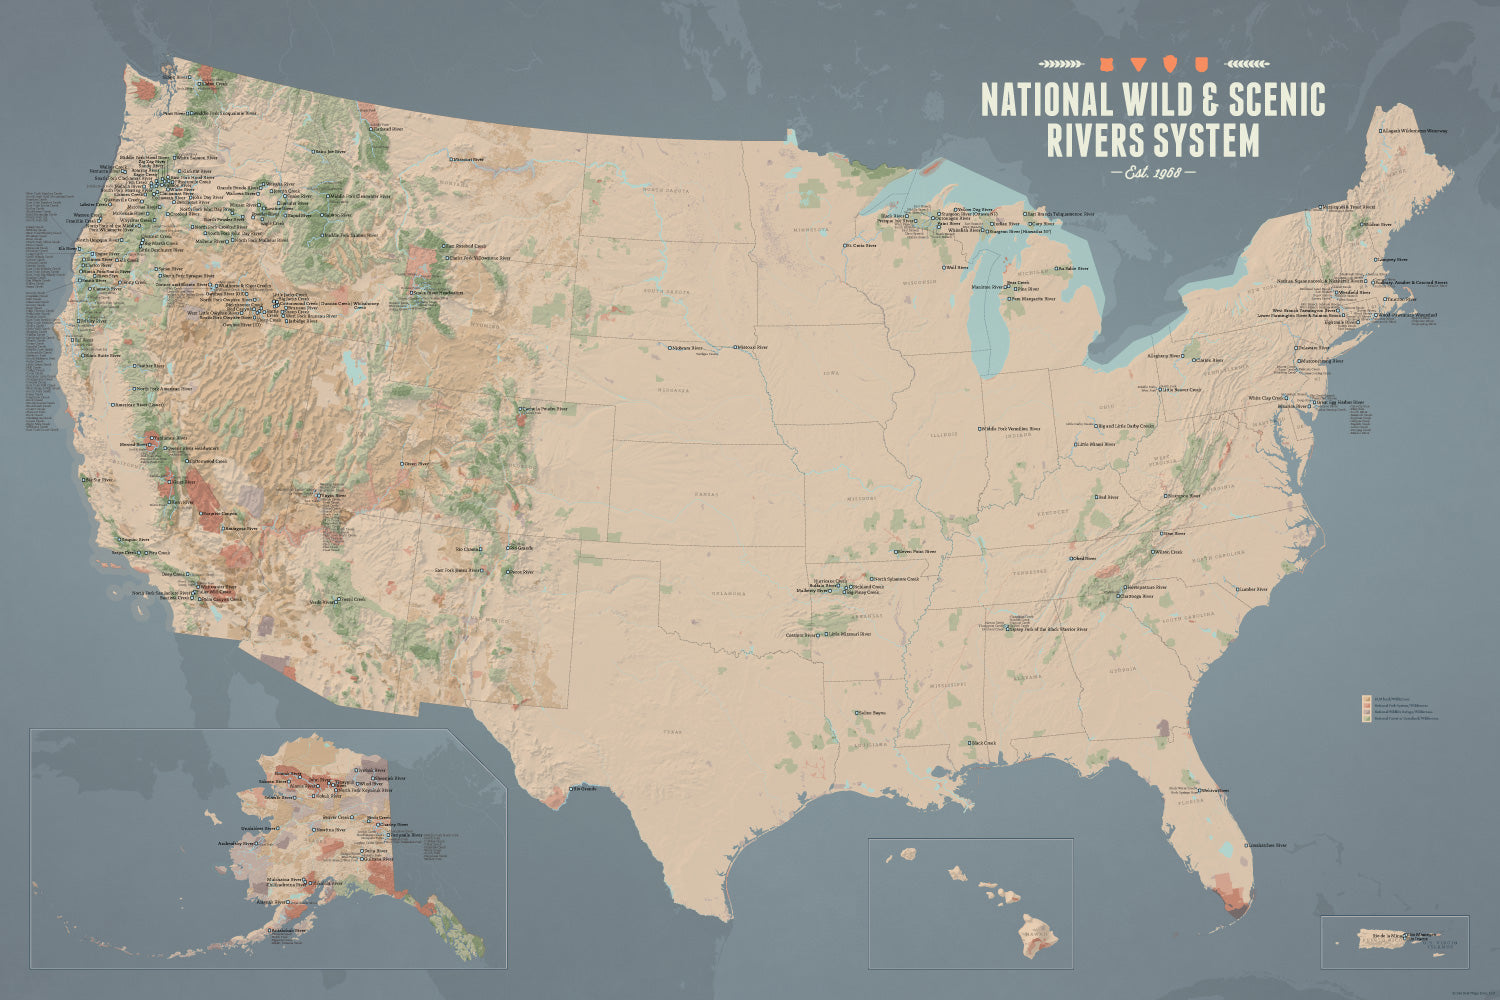 US National Wild & Scenic Rivers System Map 24x36 Poster